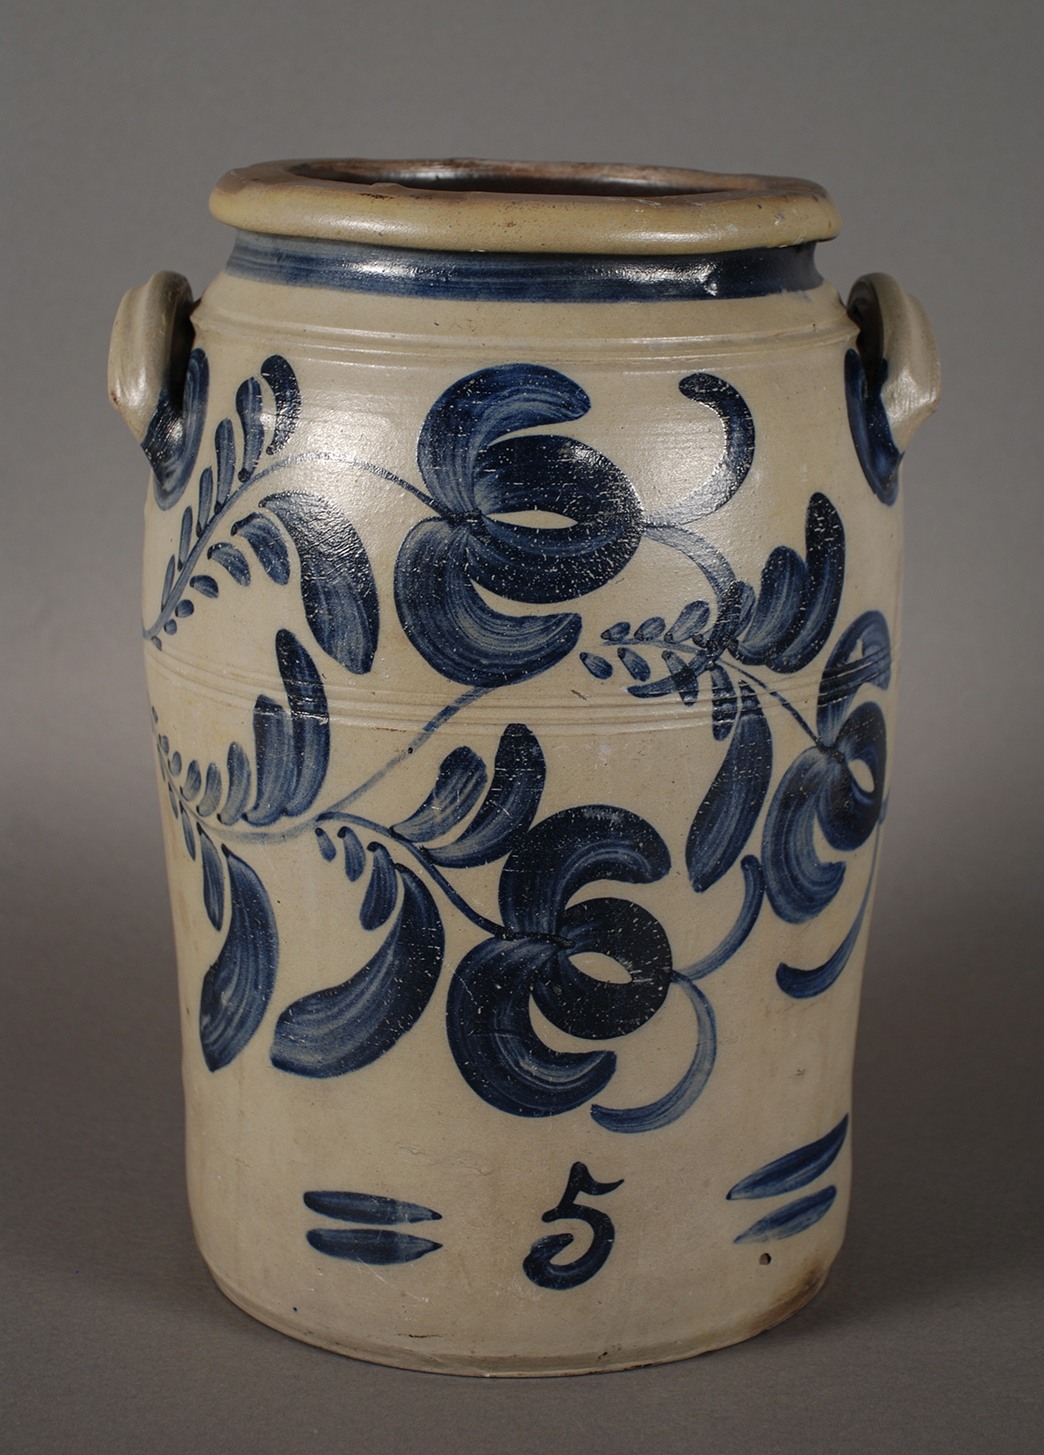 Cylindrical five-gallon stoneware storage jar. Exterior has gray salt glaze and cobalt freehand decoration in floral patterns. Made by James Hamilton and Company, c. 1860. On display in the Special Collections Gallery. Gift of Sandra Palmer.